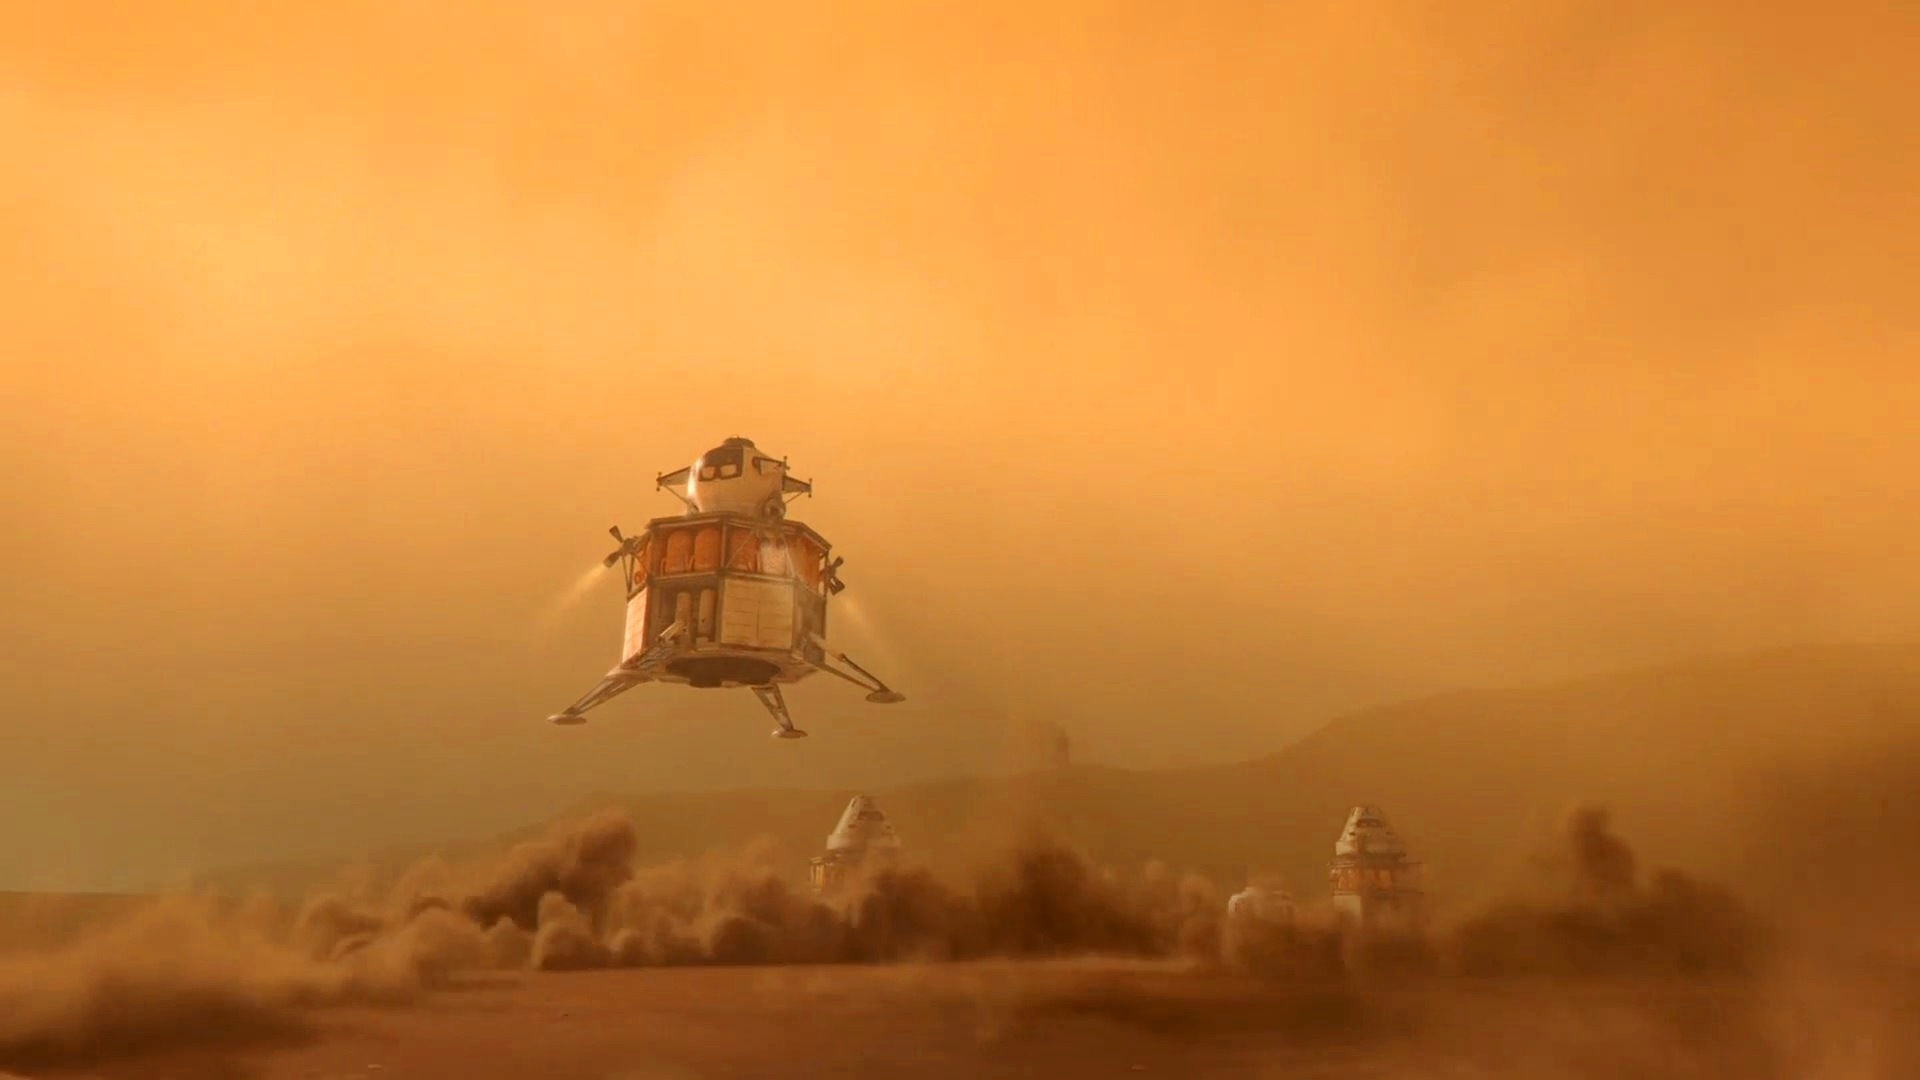 human Mars: HD images from Journey to Space documentary